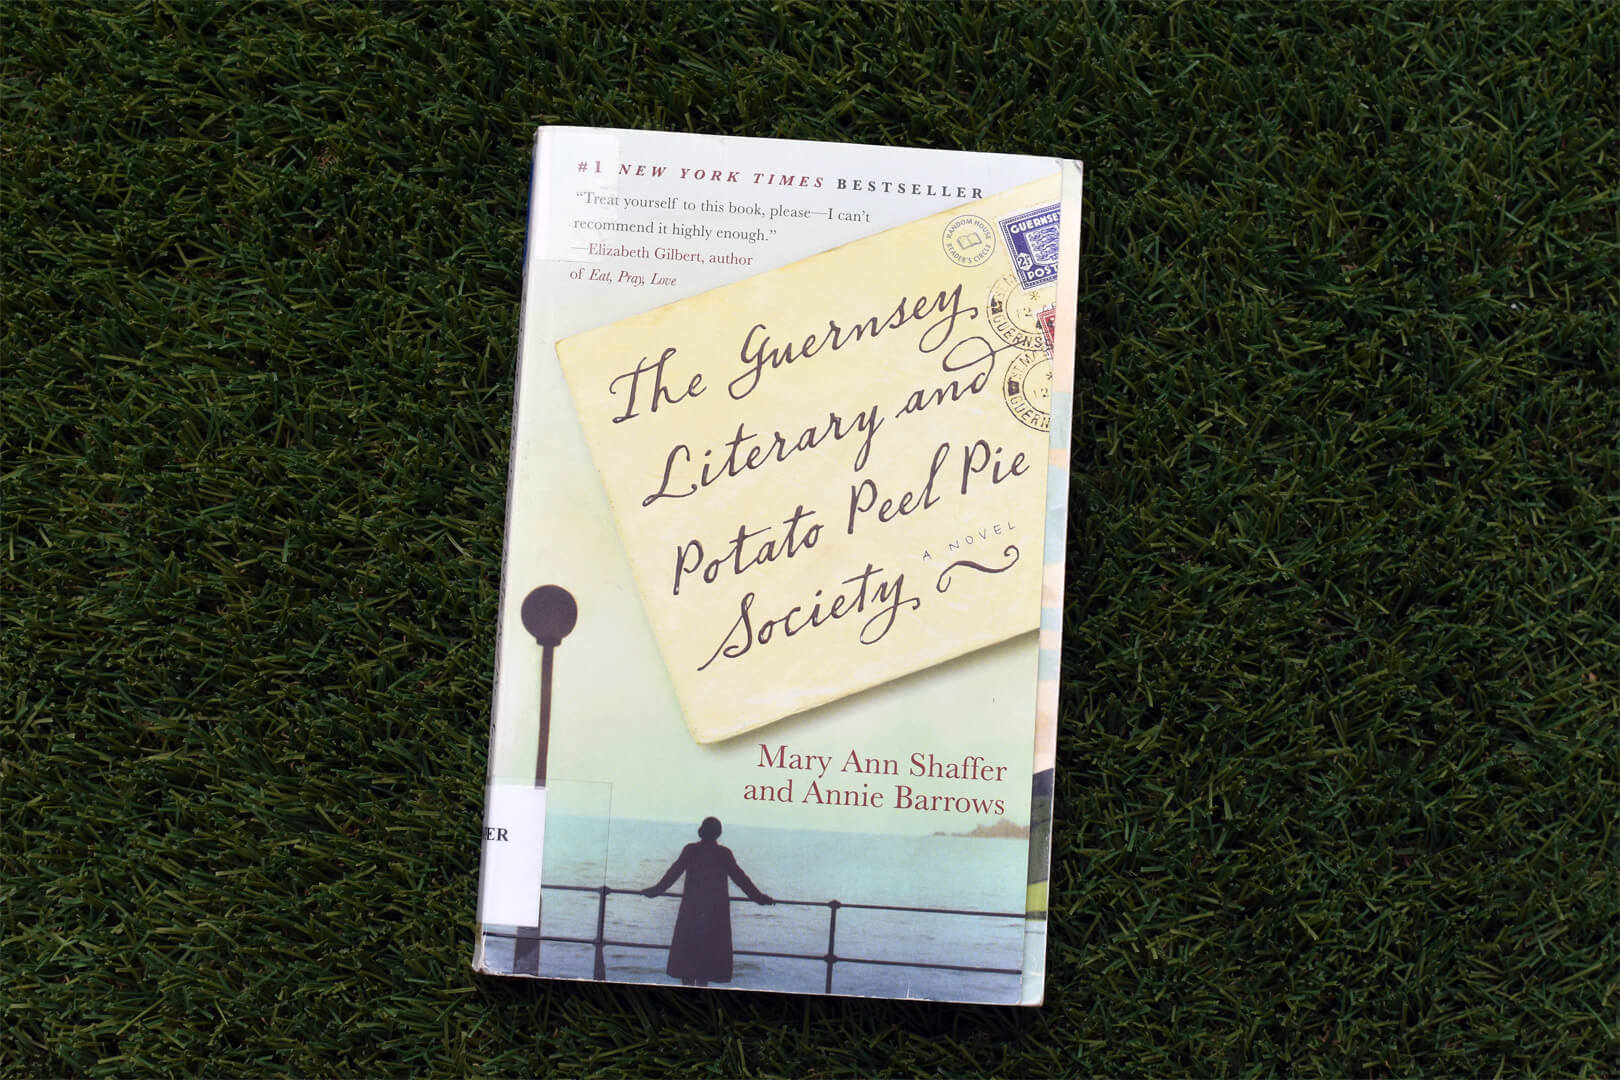 The Guernsey Literary and Potato Peel Pie Society Review - Book Club Chat